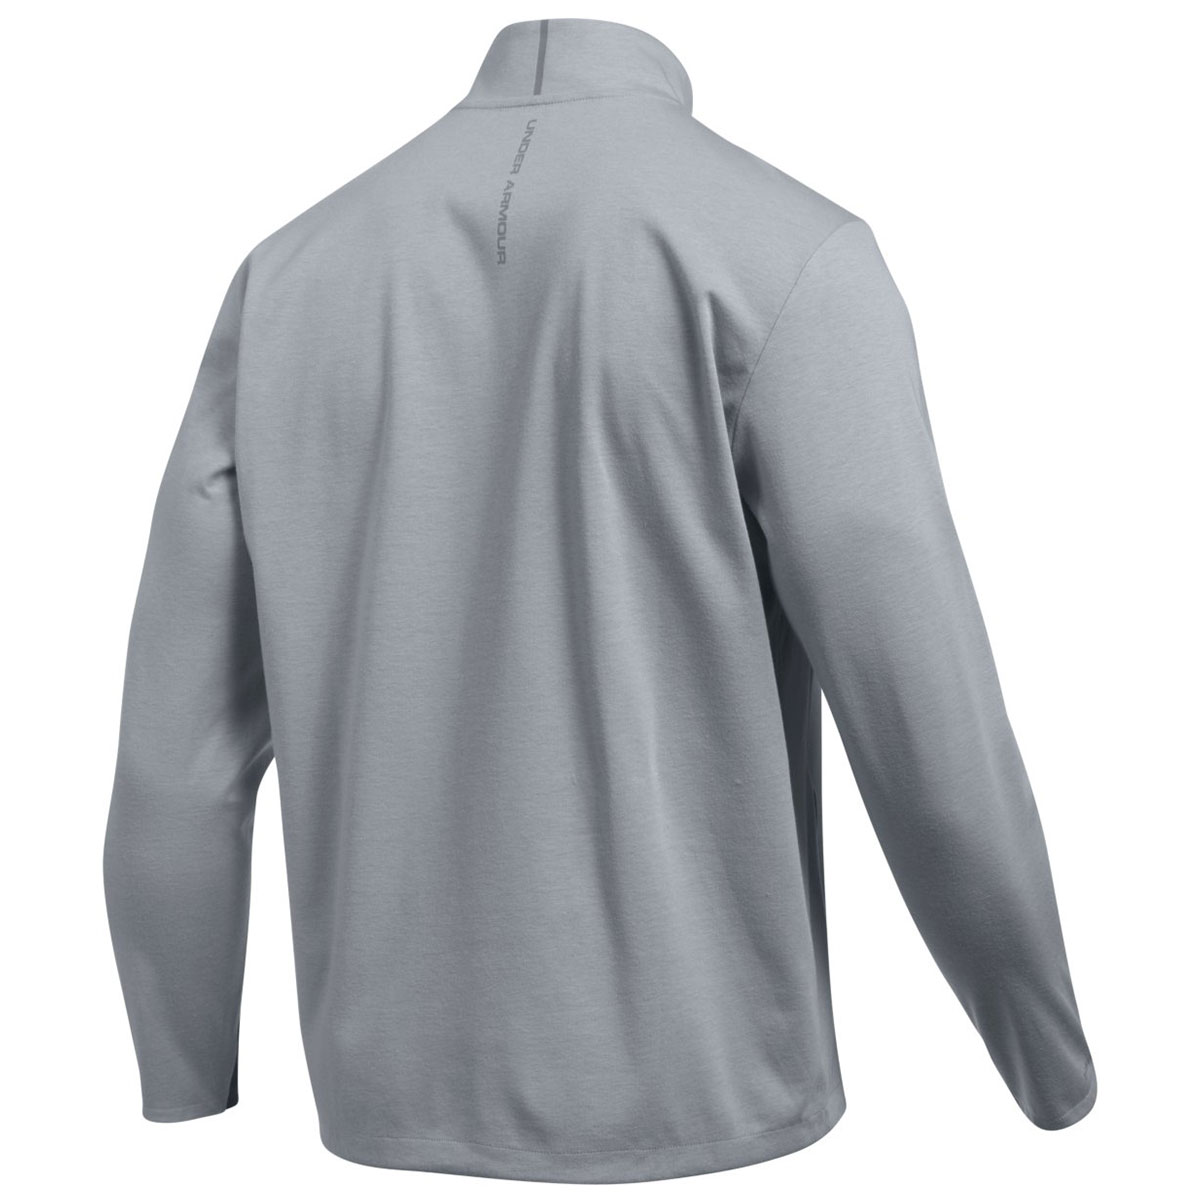 Under-Armour-Mens-UA-Storm-1-4-Zip-Performance-Golf-Sweater-Pullover-40-OFF-RRP thumbnail 5